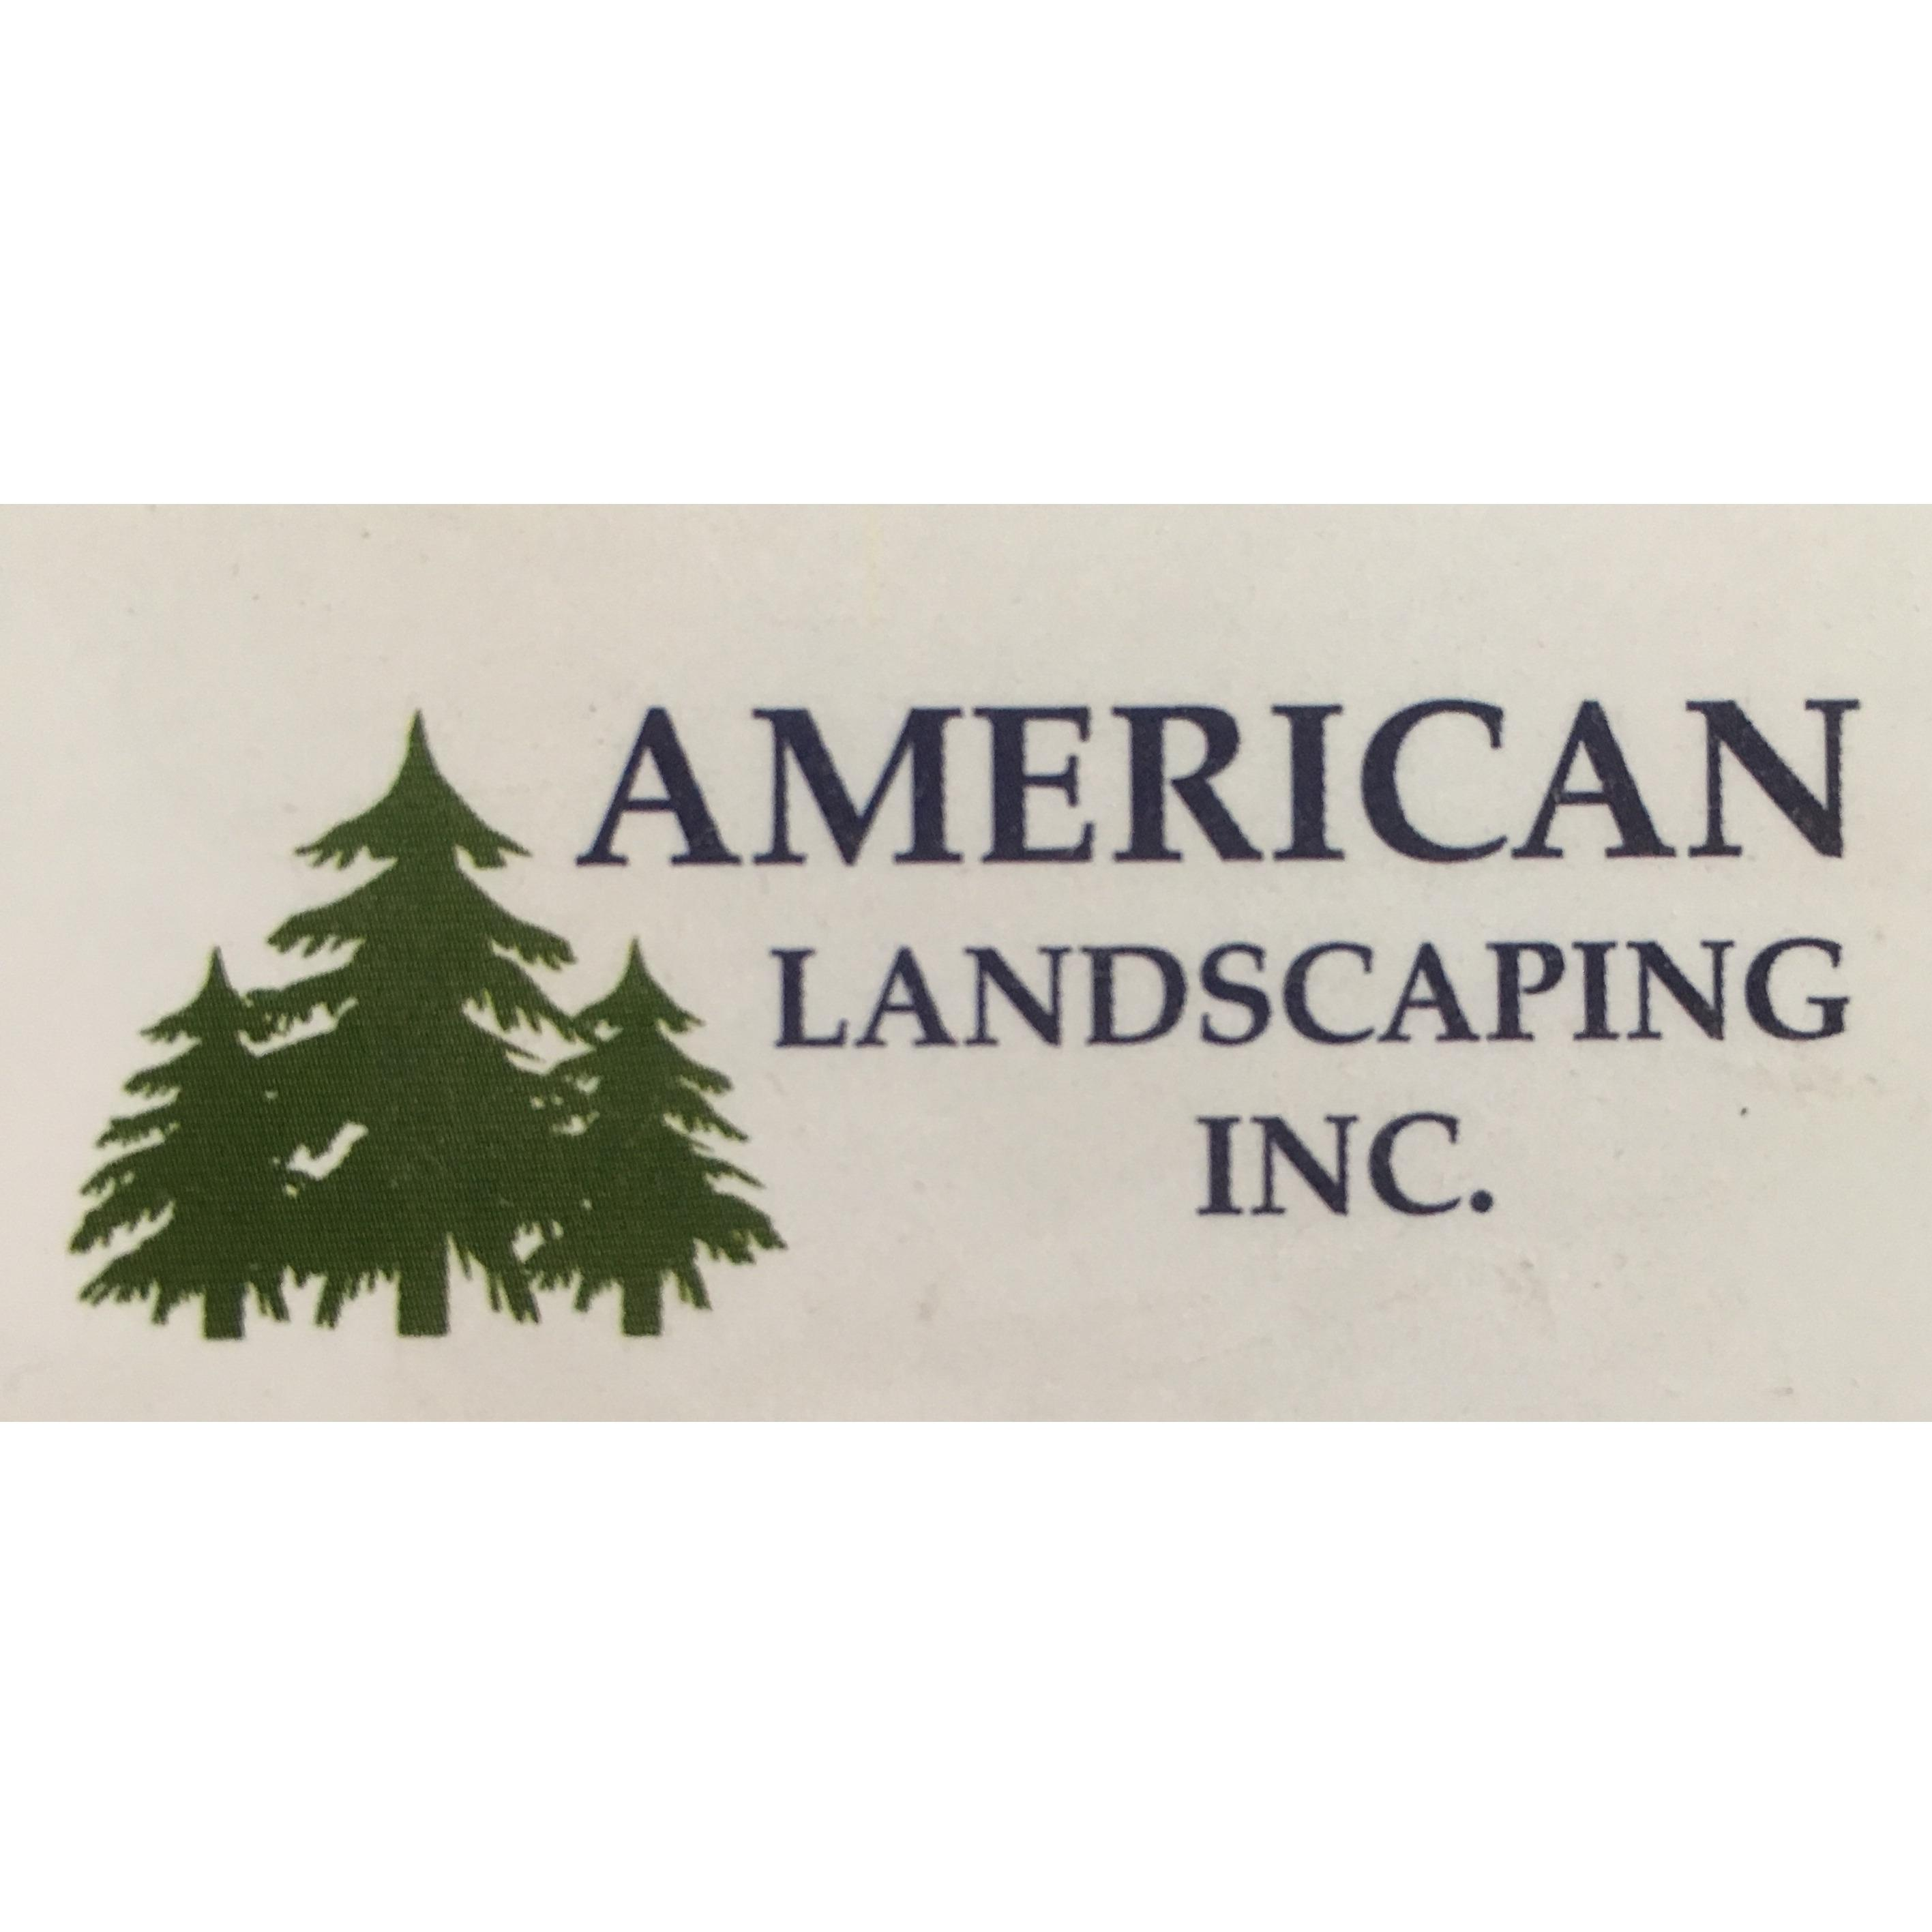 American Landscaping Inc